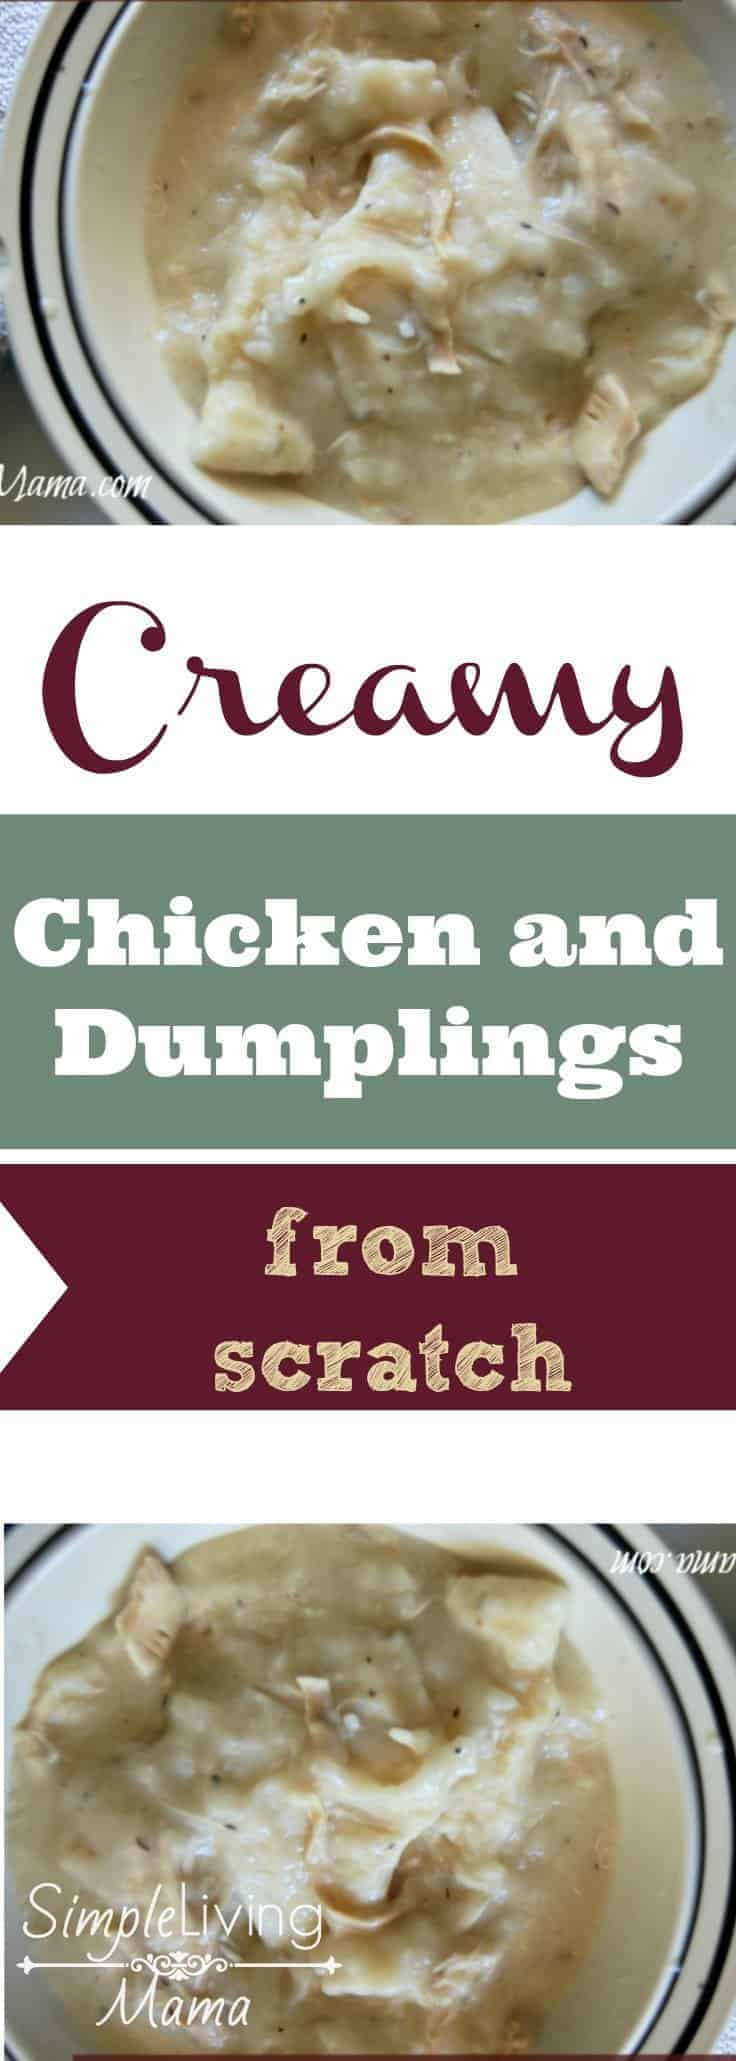 Creamy chicken and dumplings are the ultimate comfort food. Make them from scratch for an even more homey feel. This recipe is just like grandma's!